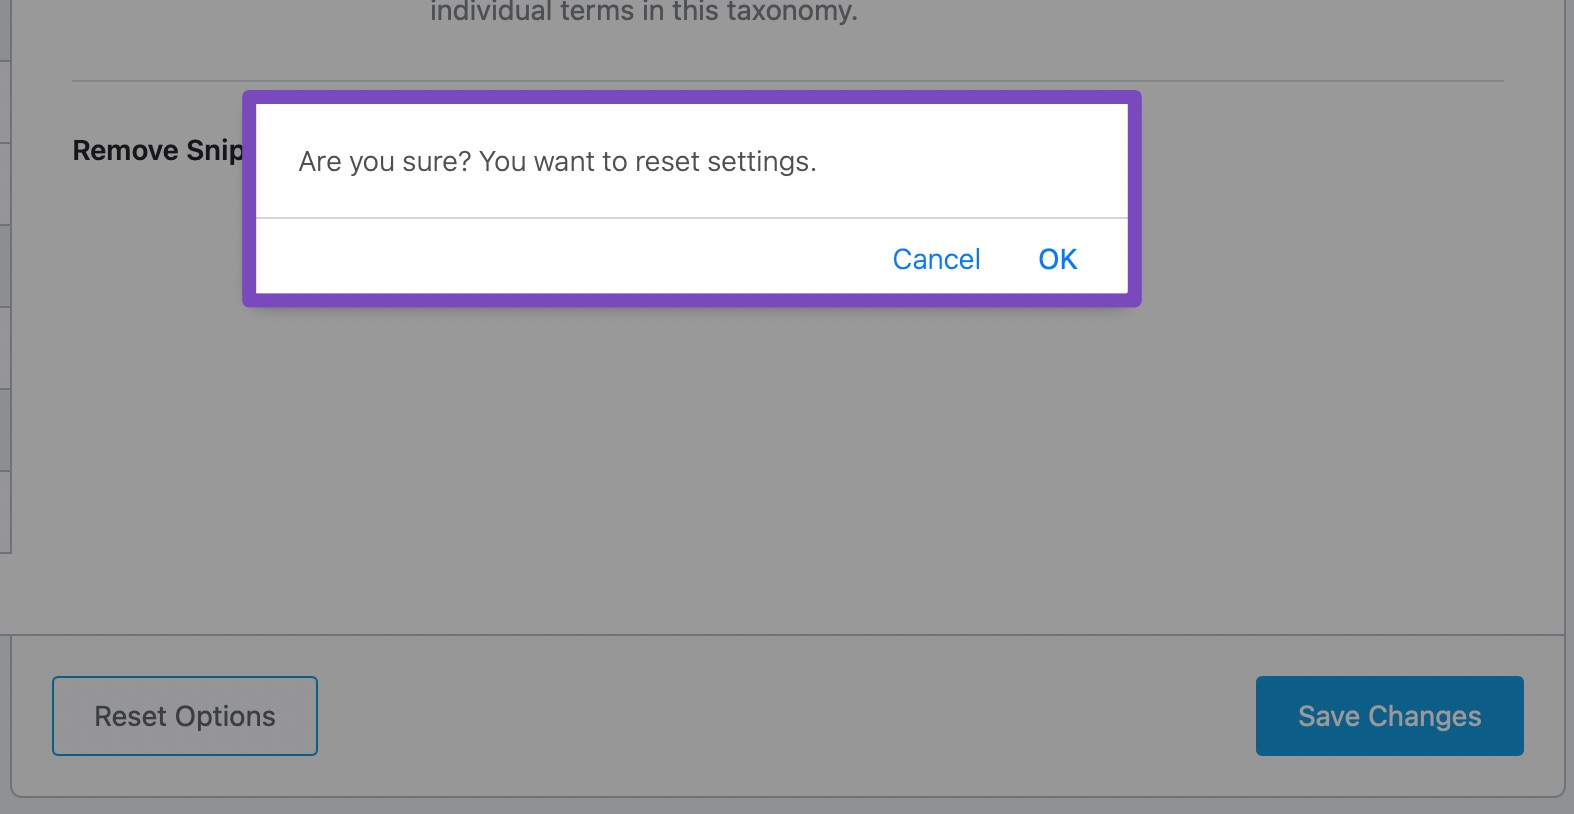 Confirmation box for resetting settings